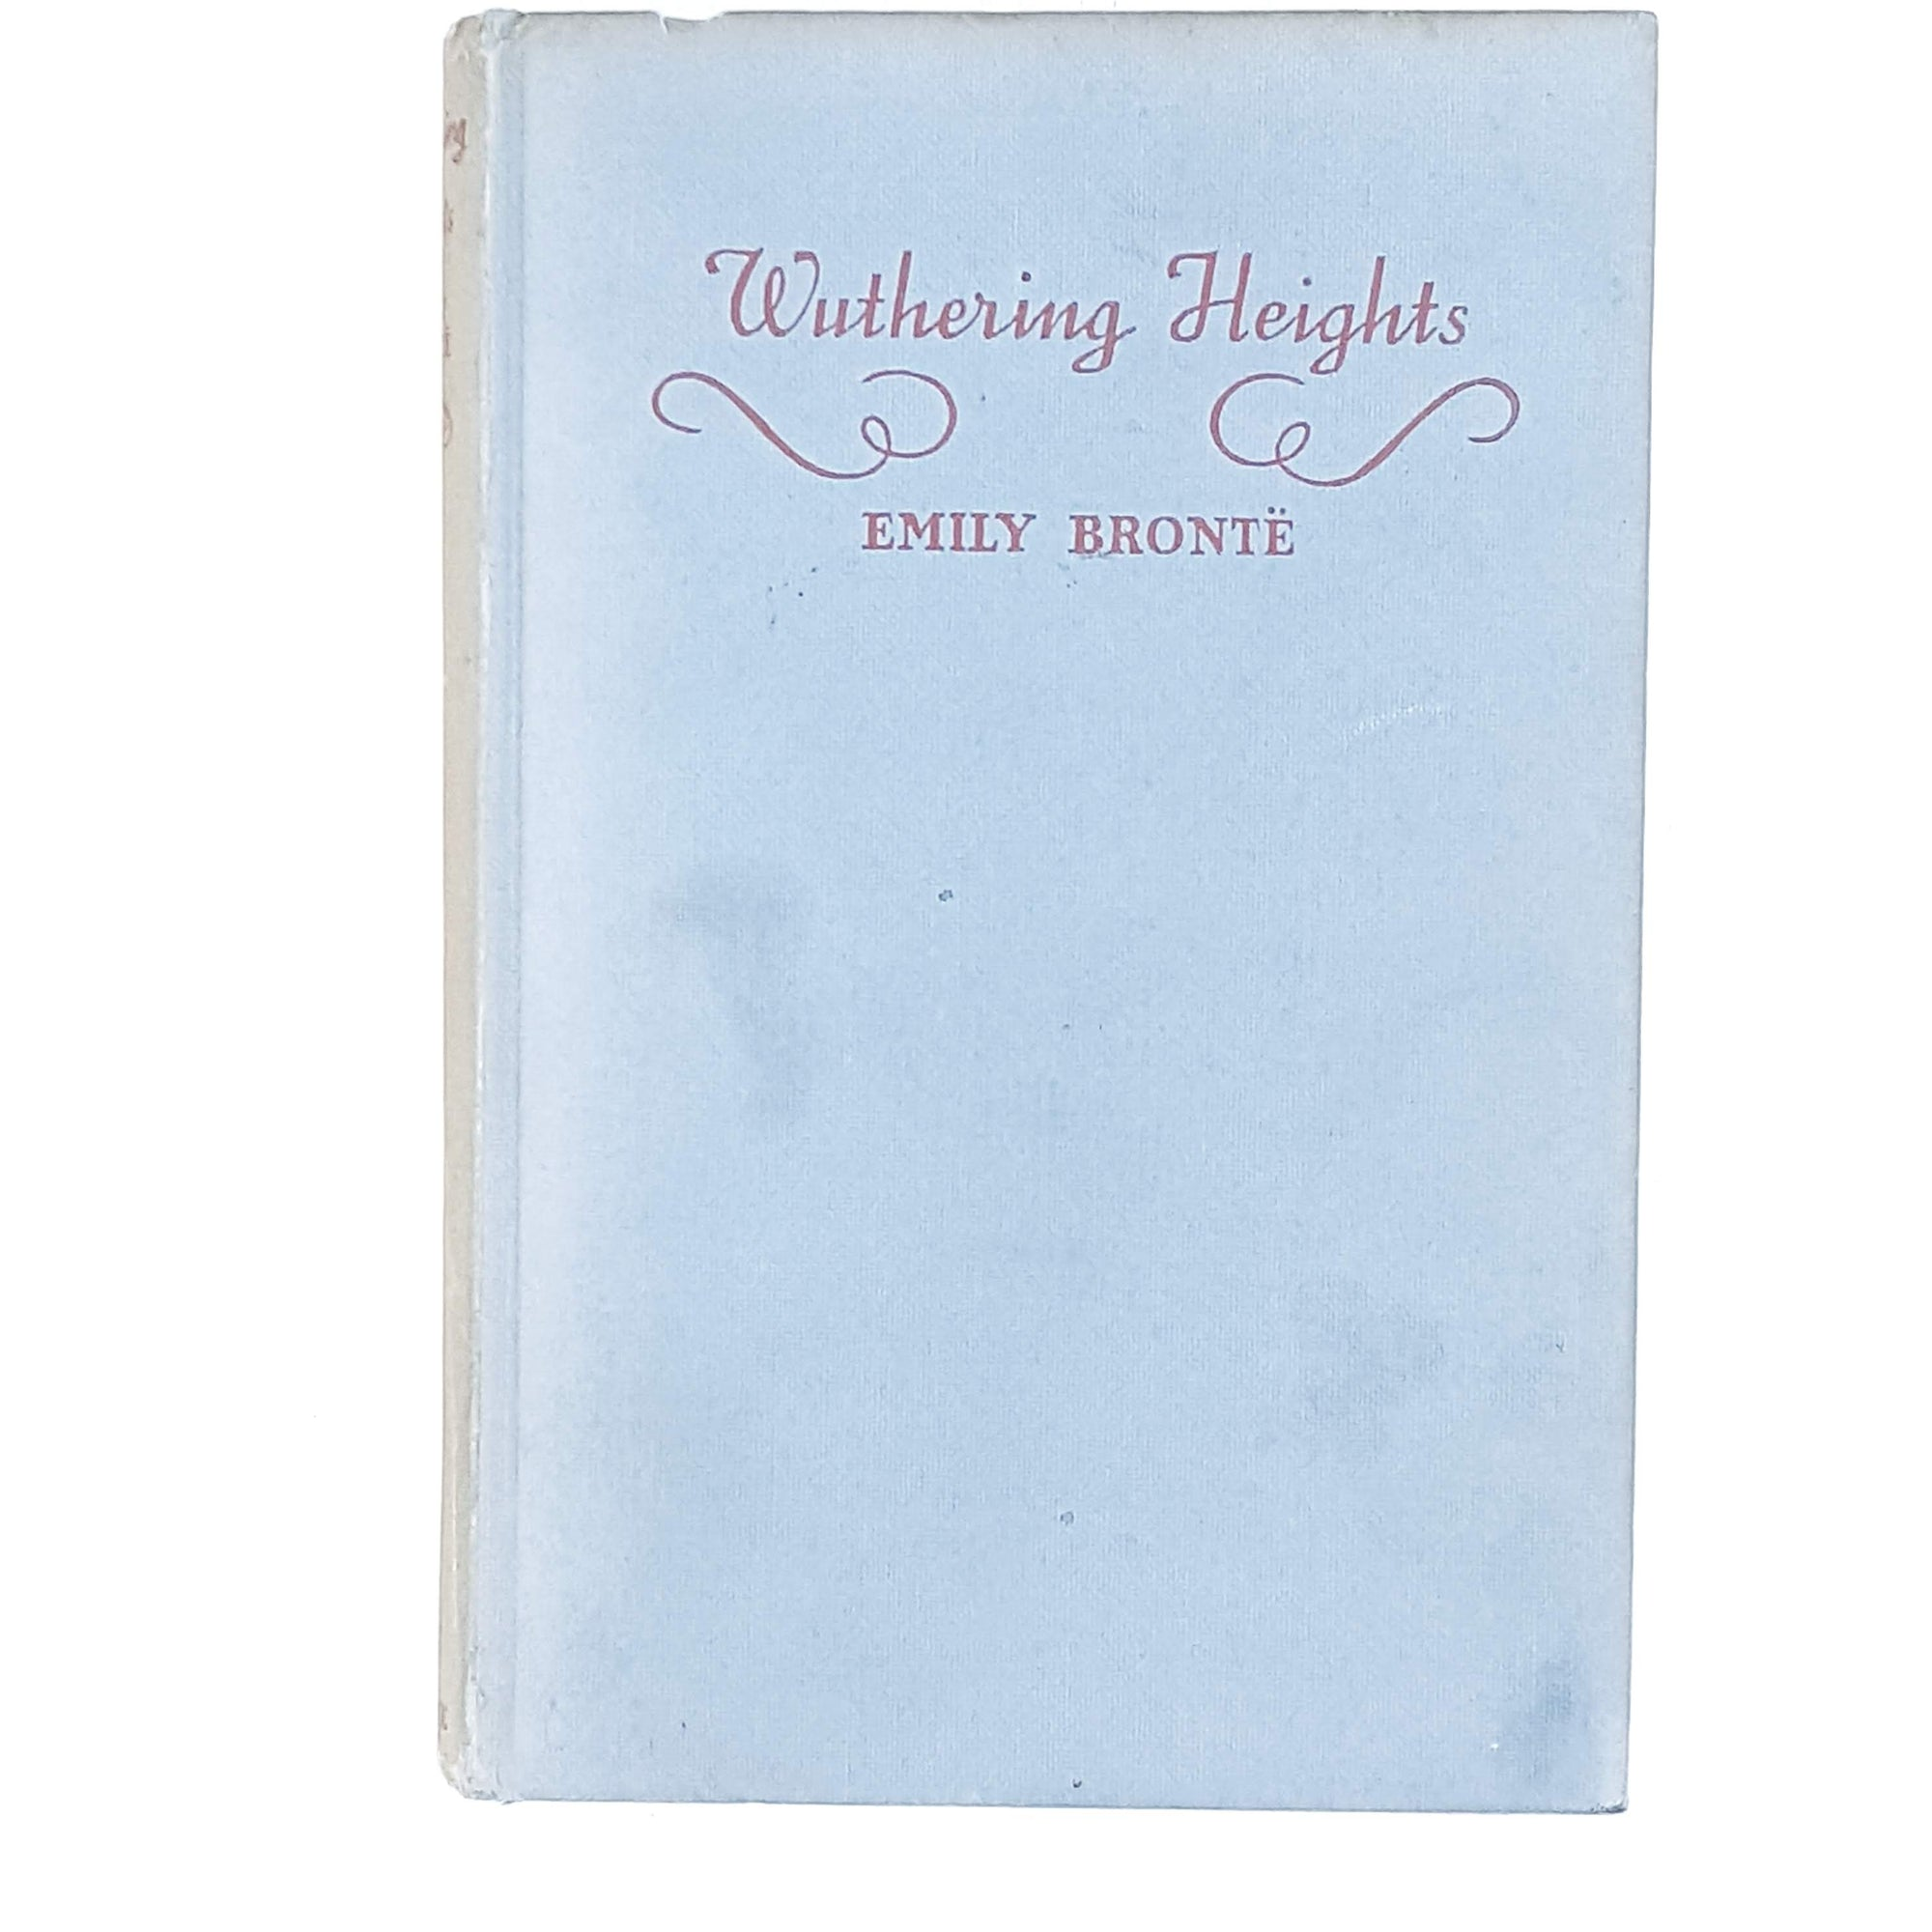 Emily Brontë's Wuthering Heights sky blue